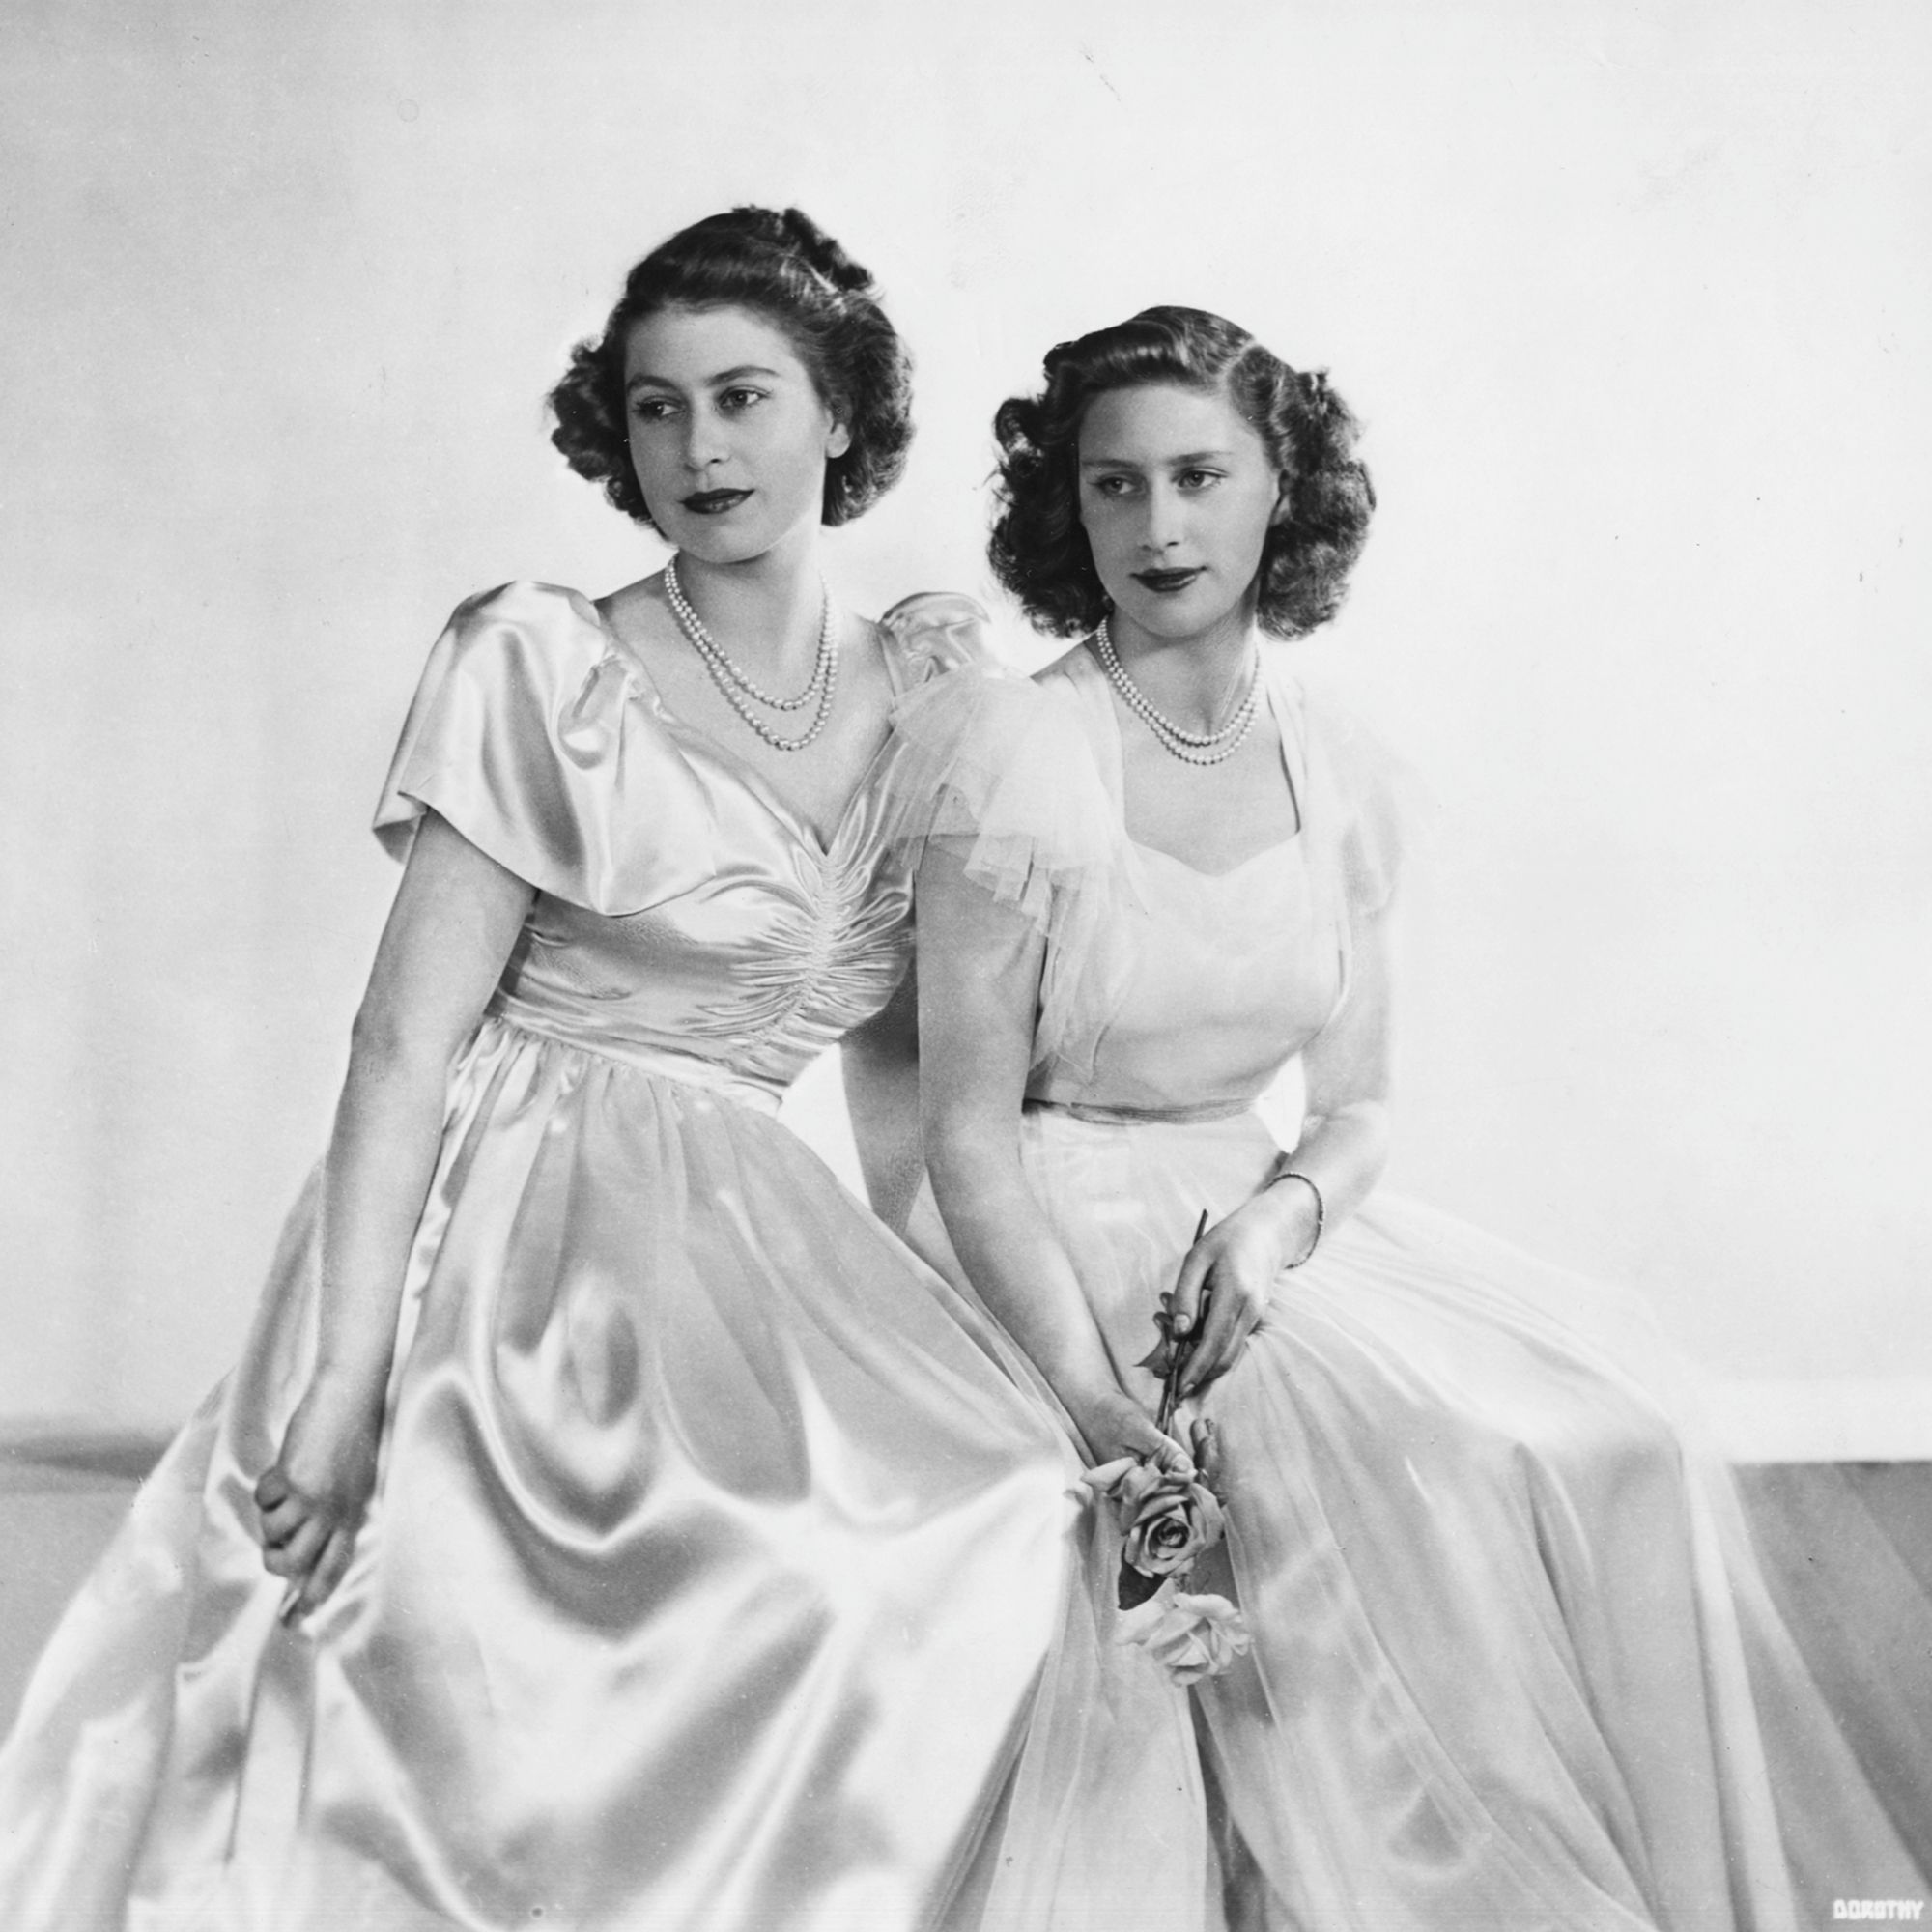 1902 - 2016 ~ The British Royal Family Through the Years. Over 70 rarely seen PHOTOS, with dates. Here 1946 ~ Princess Elizabeth and her sister Princess Margaret